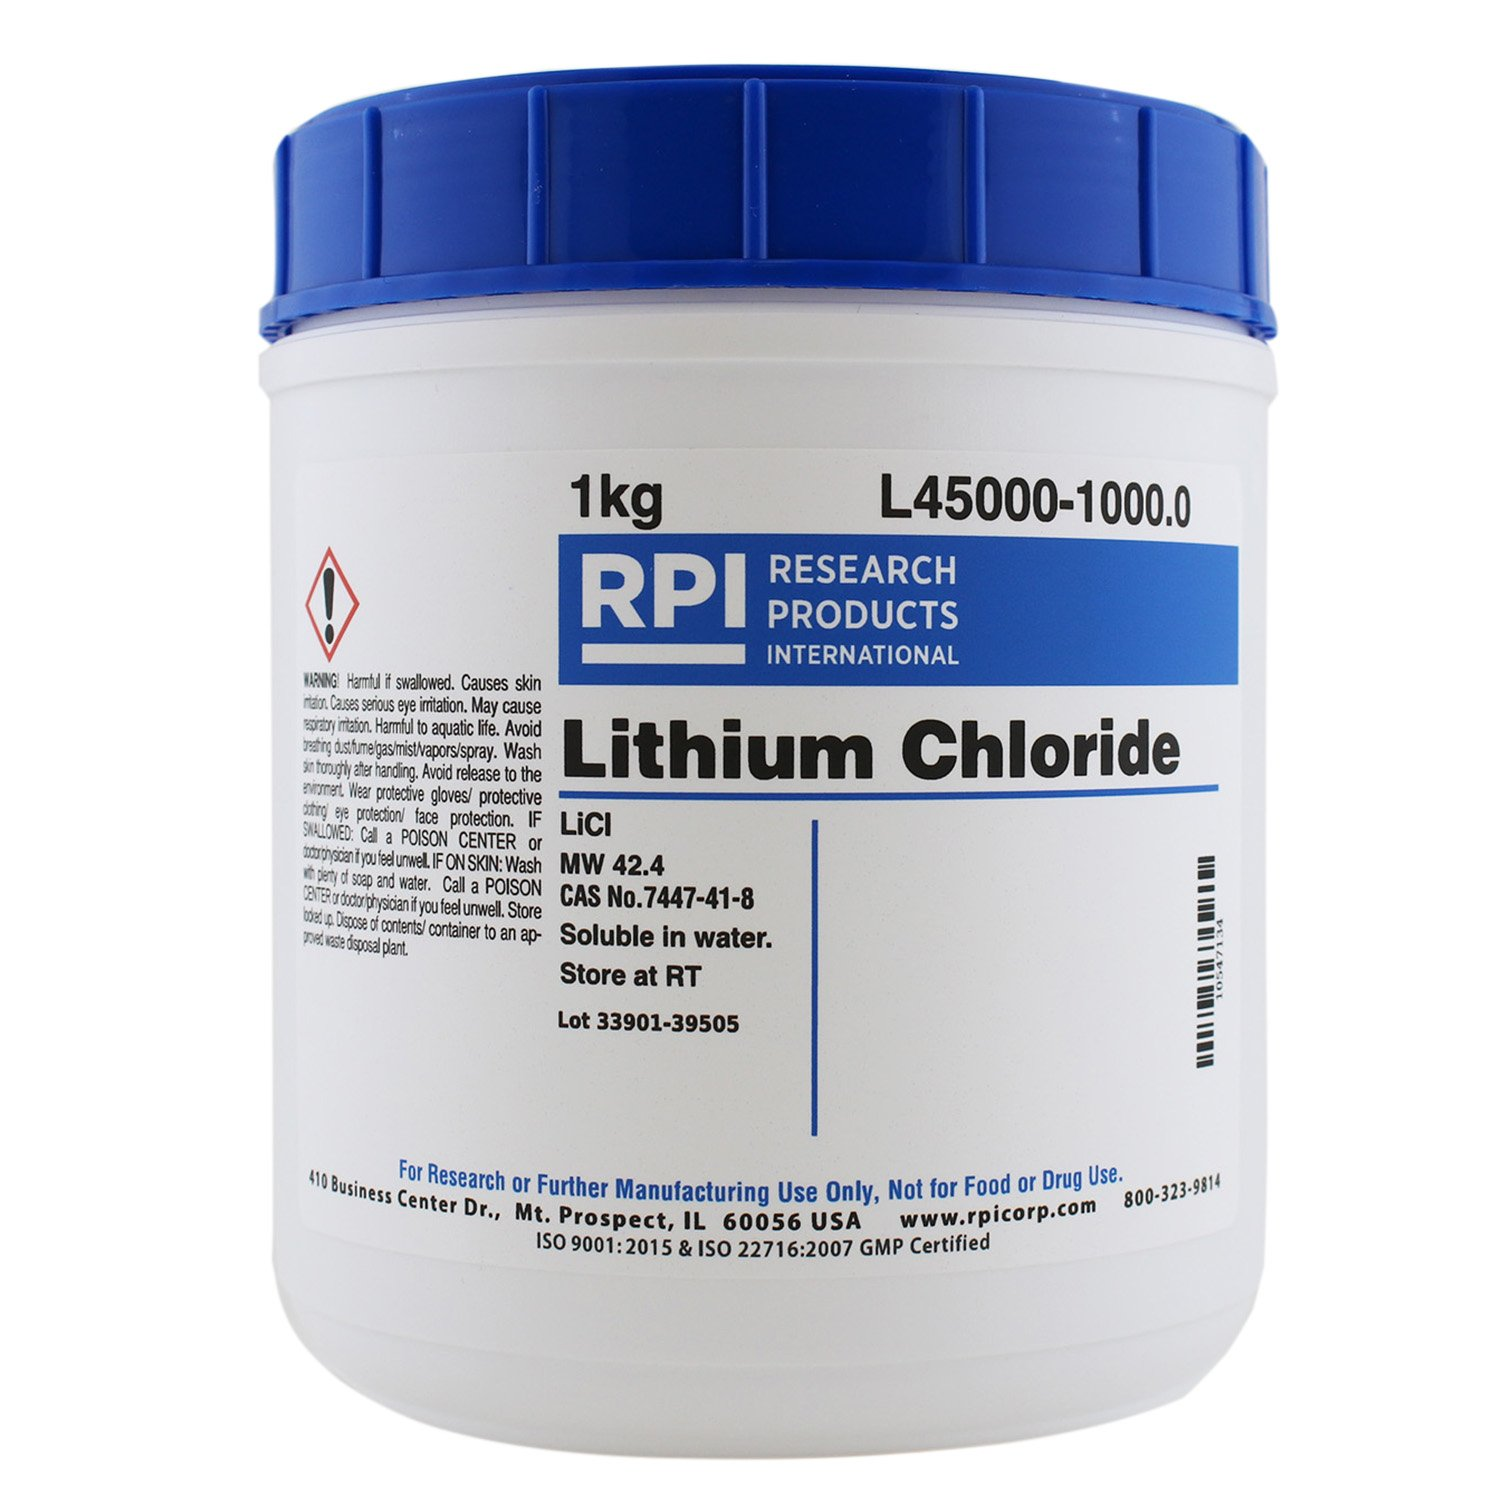 RPI High-Purity Lithium Chloride Powder, 1 Kilogram, for Research and Manufacturing